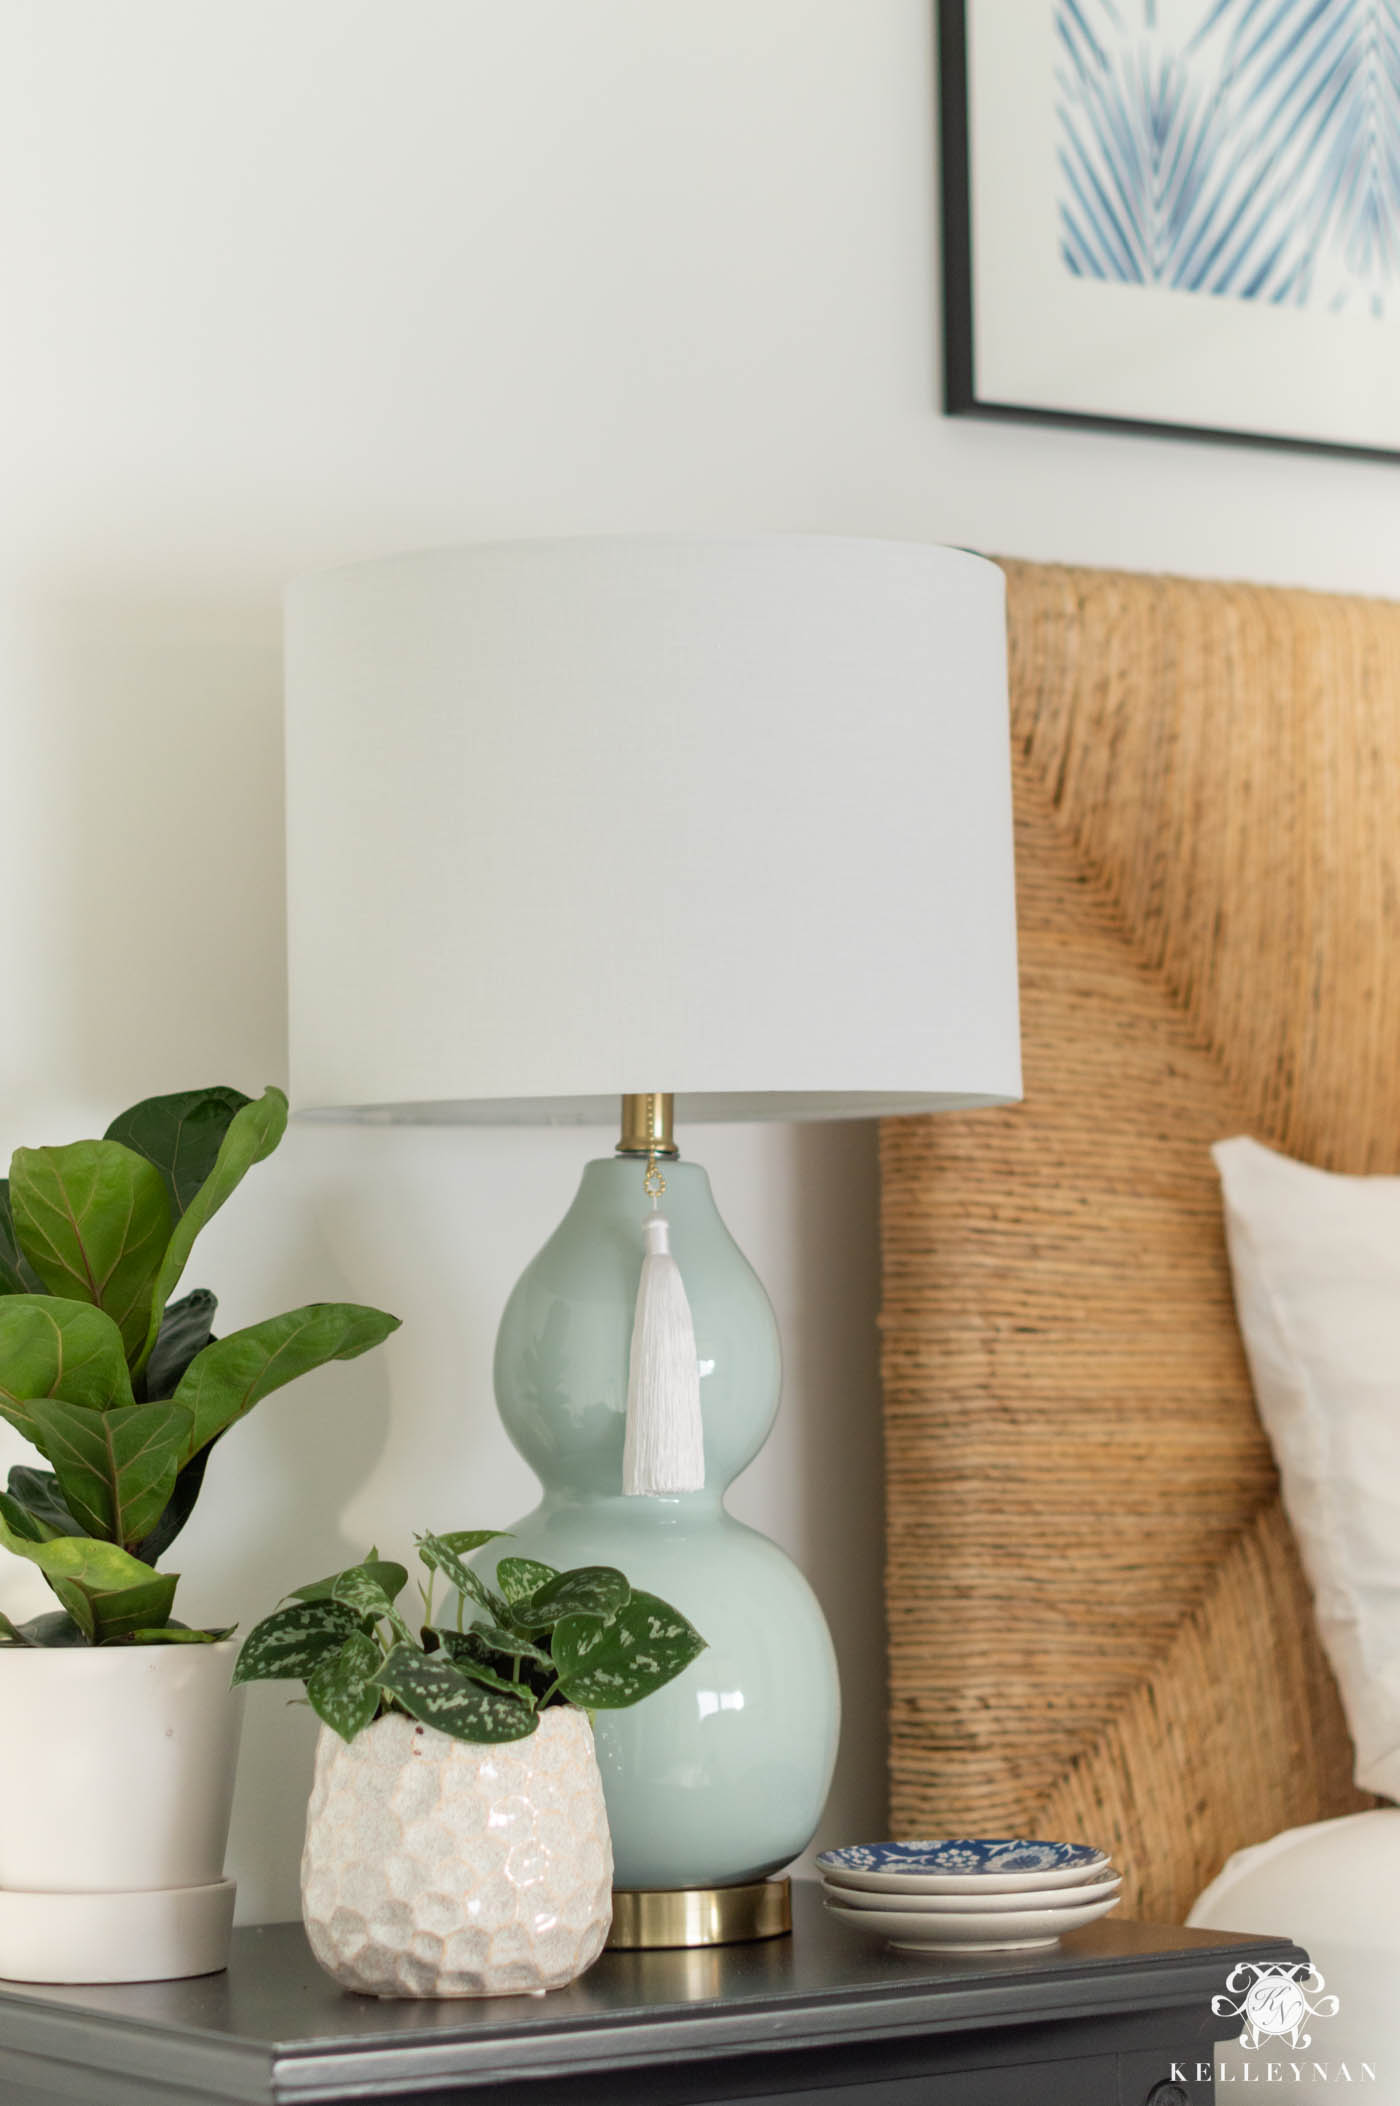 Guest Bedroom Nightstand Styling and Decor Details